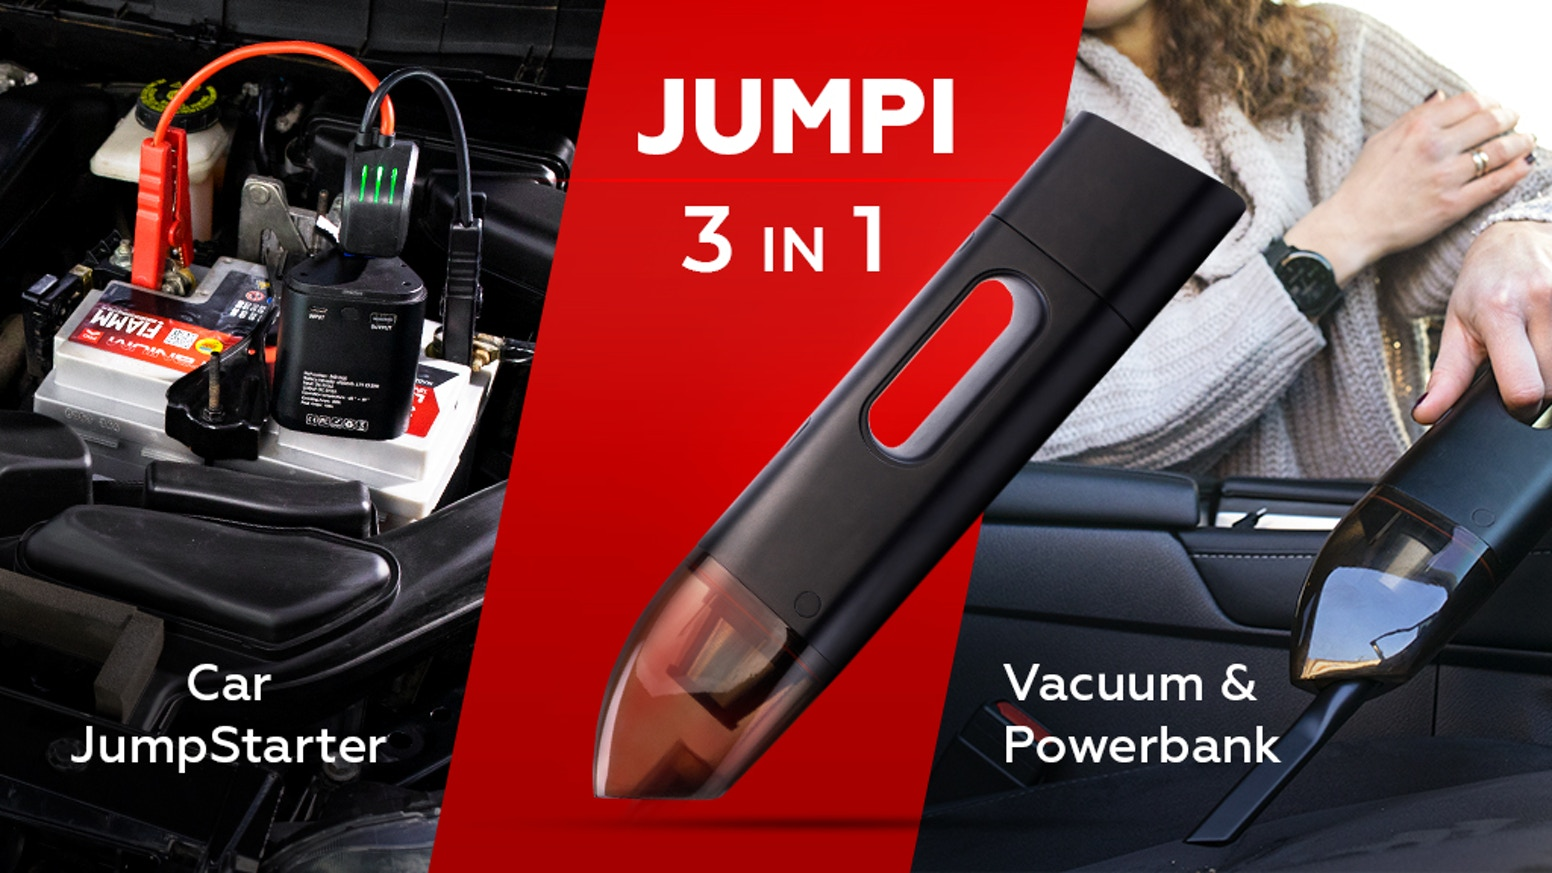 Be prepared for anything with Jumpi, the 3-in-1 jumpstarter + cordless vacuum + power bank car companion.